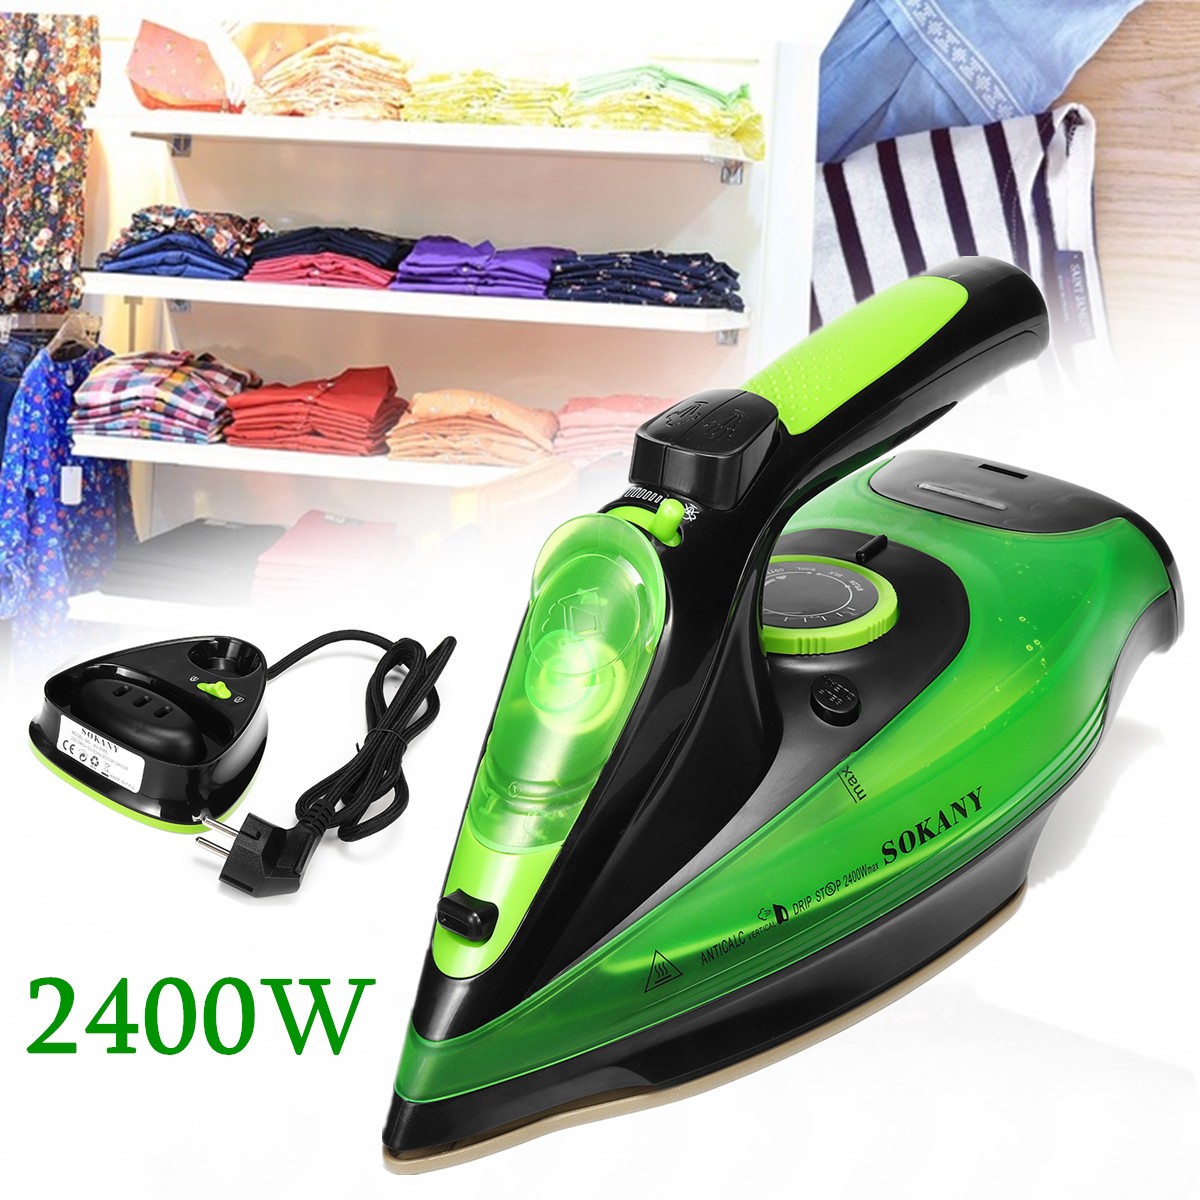 Cordless Wireless Charging Portable Steam Iron 5 Speed Adjust 2400W Clothes Ironing Steamer Portable Ceramic Soleplate